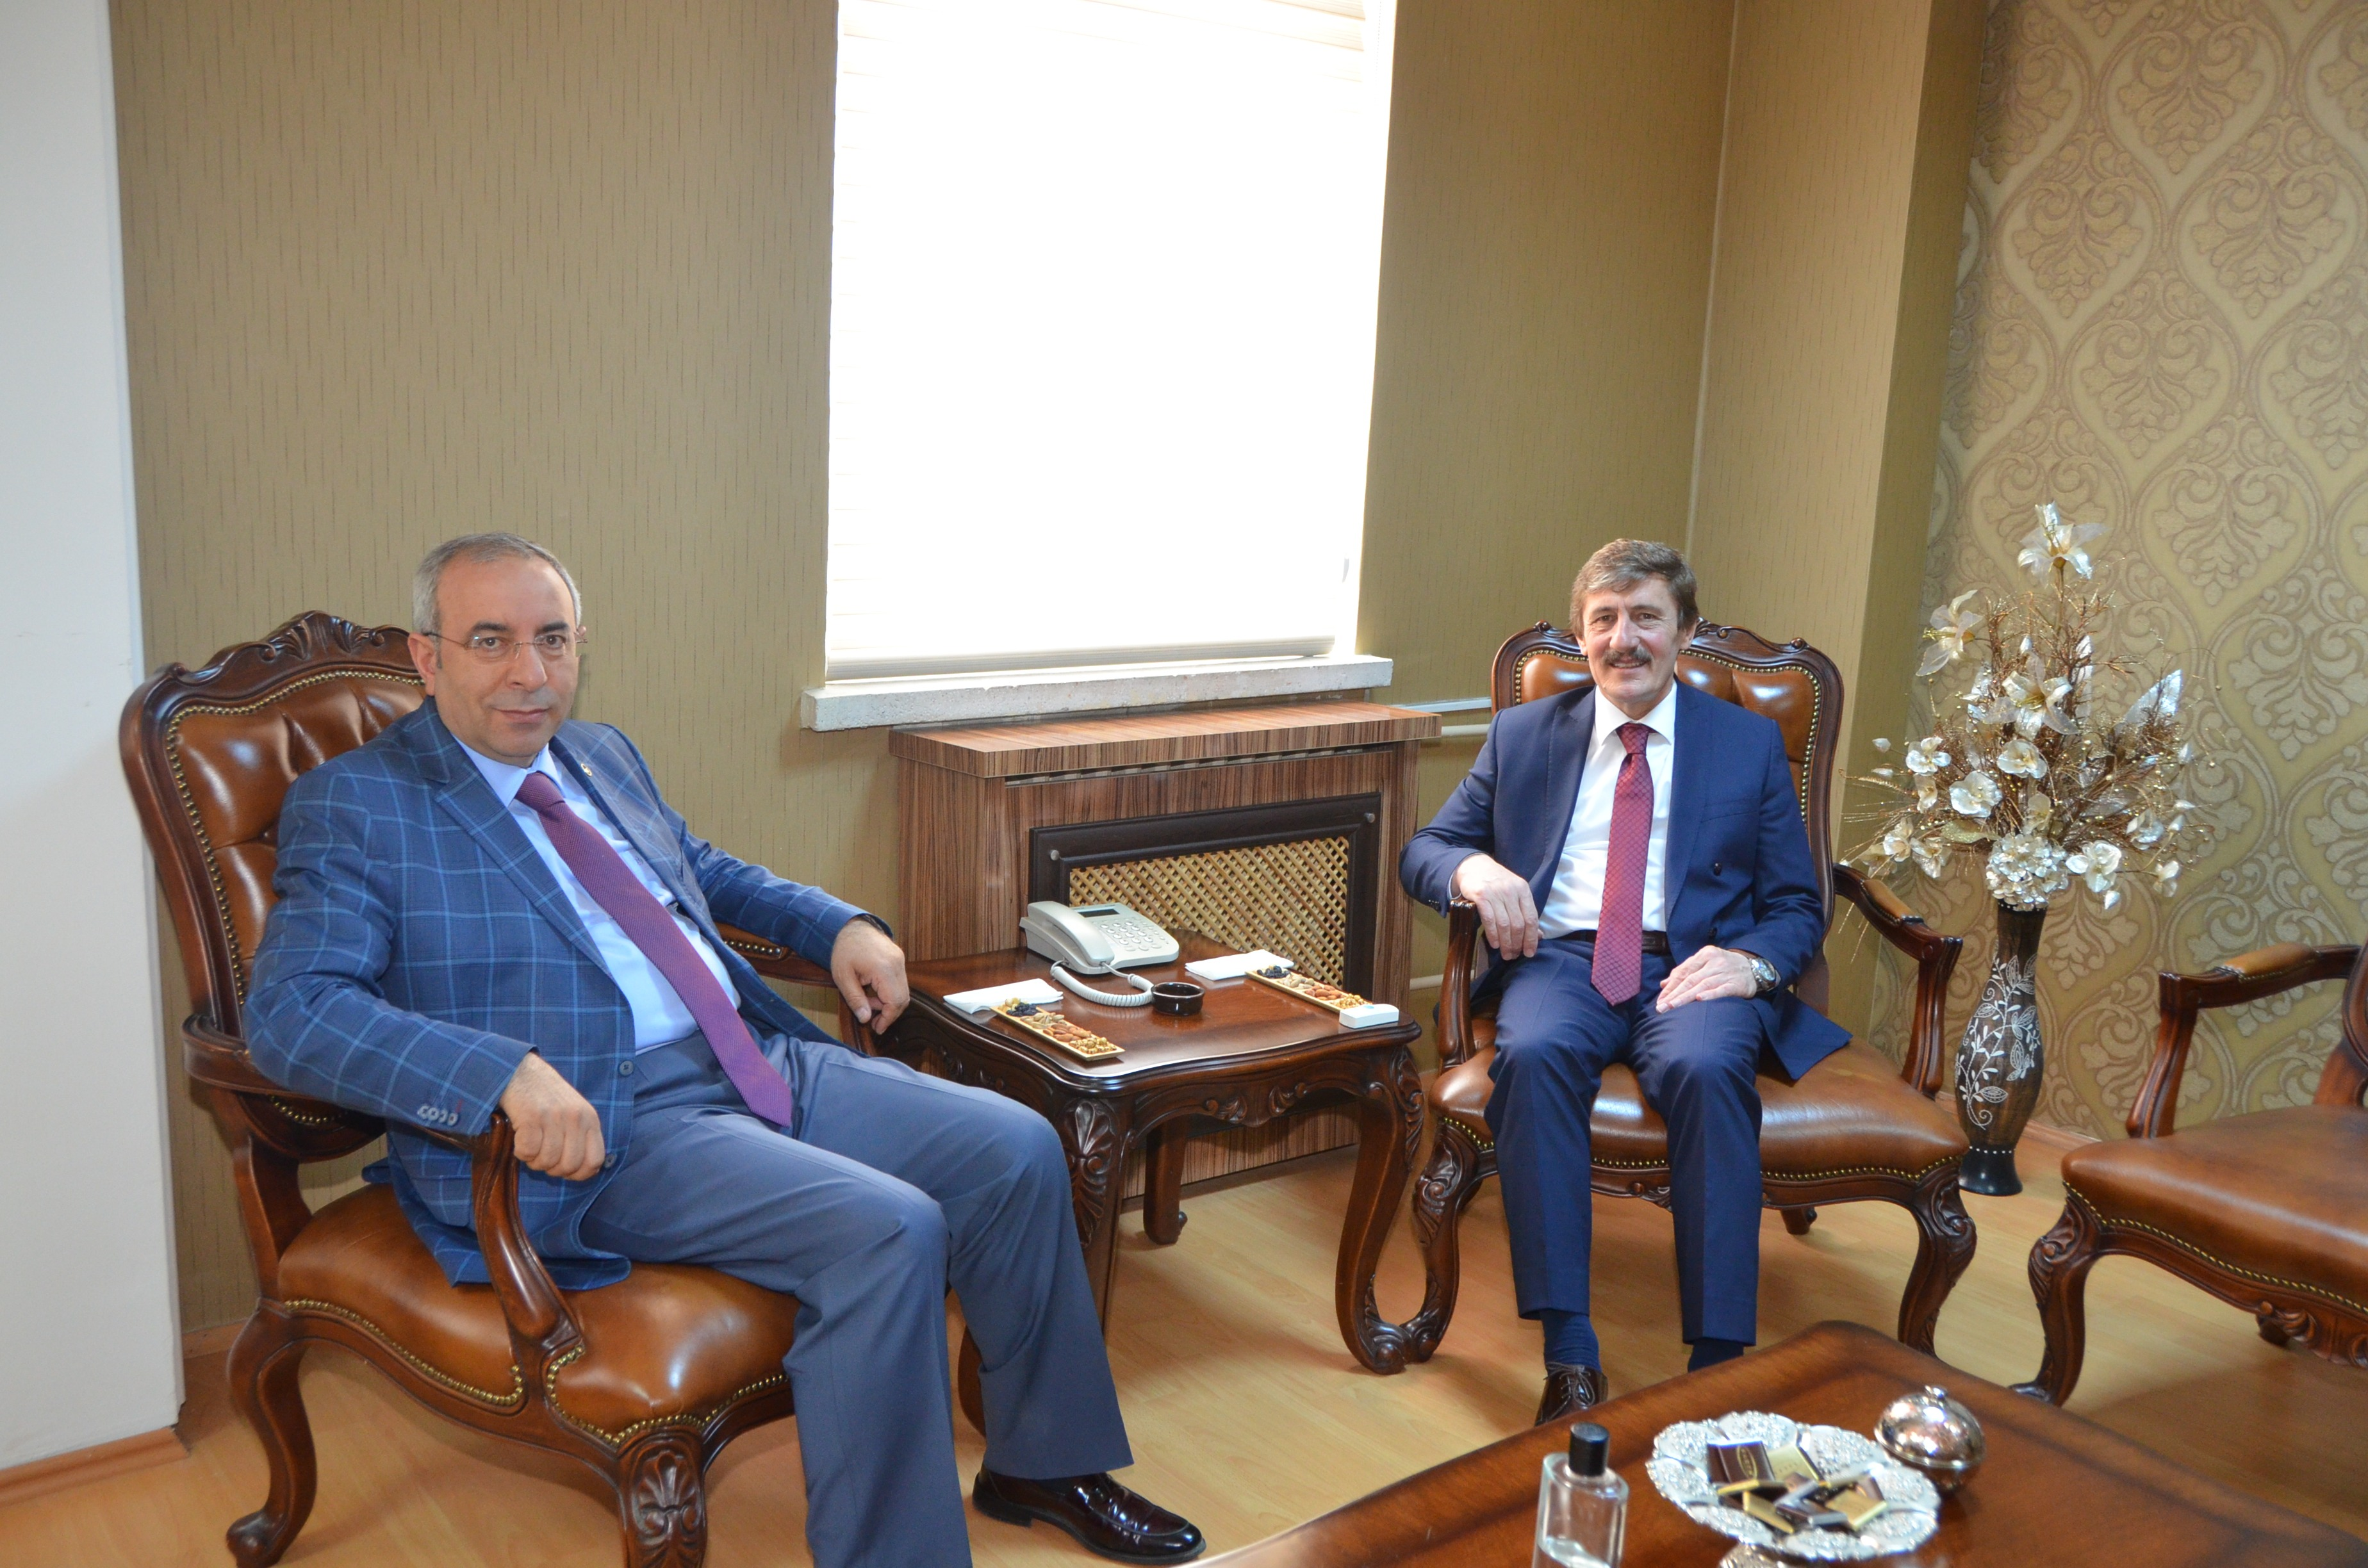 Visit from Yüzüncü Yıl University Rector Prof. Dr. Battal to our Rector